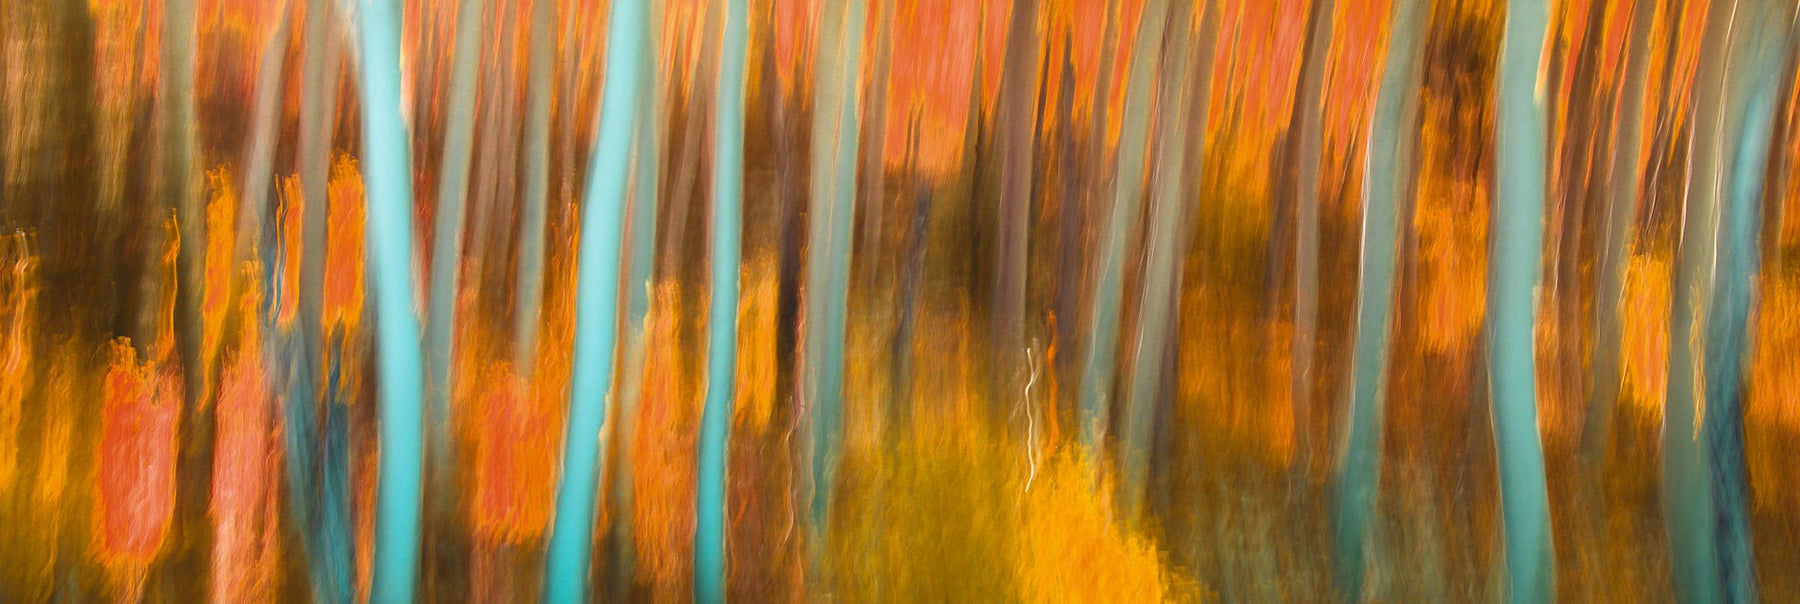 Blurred forest of orange birch trees in Colorado